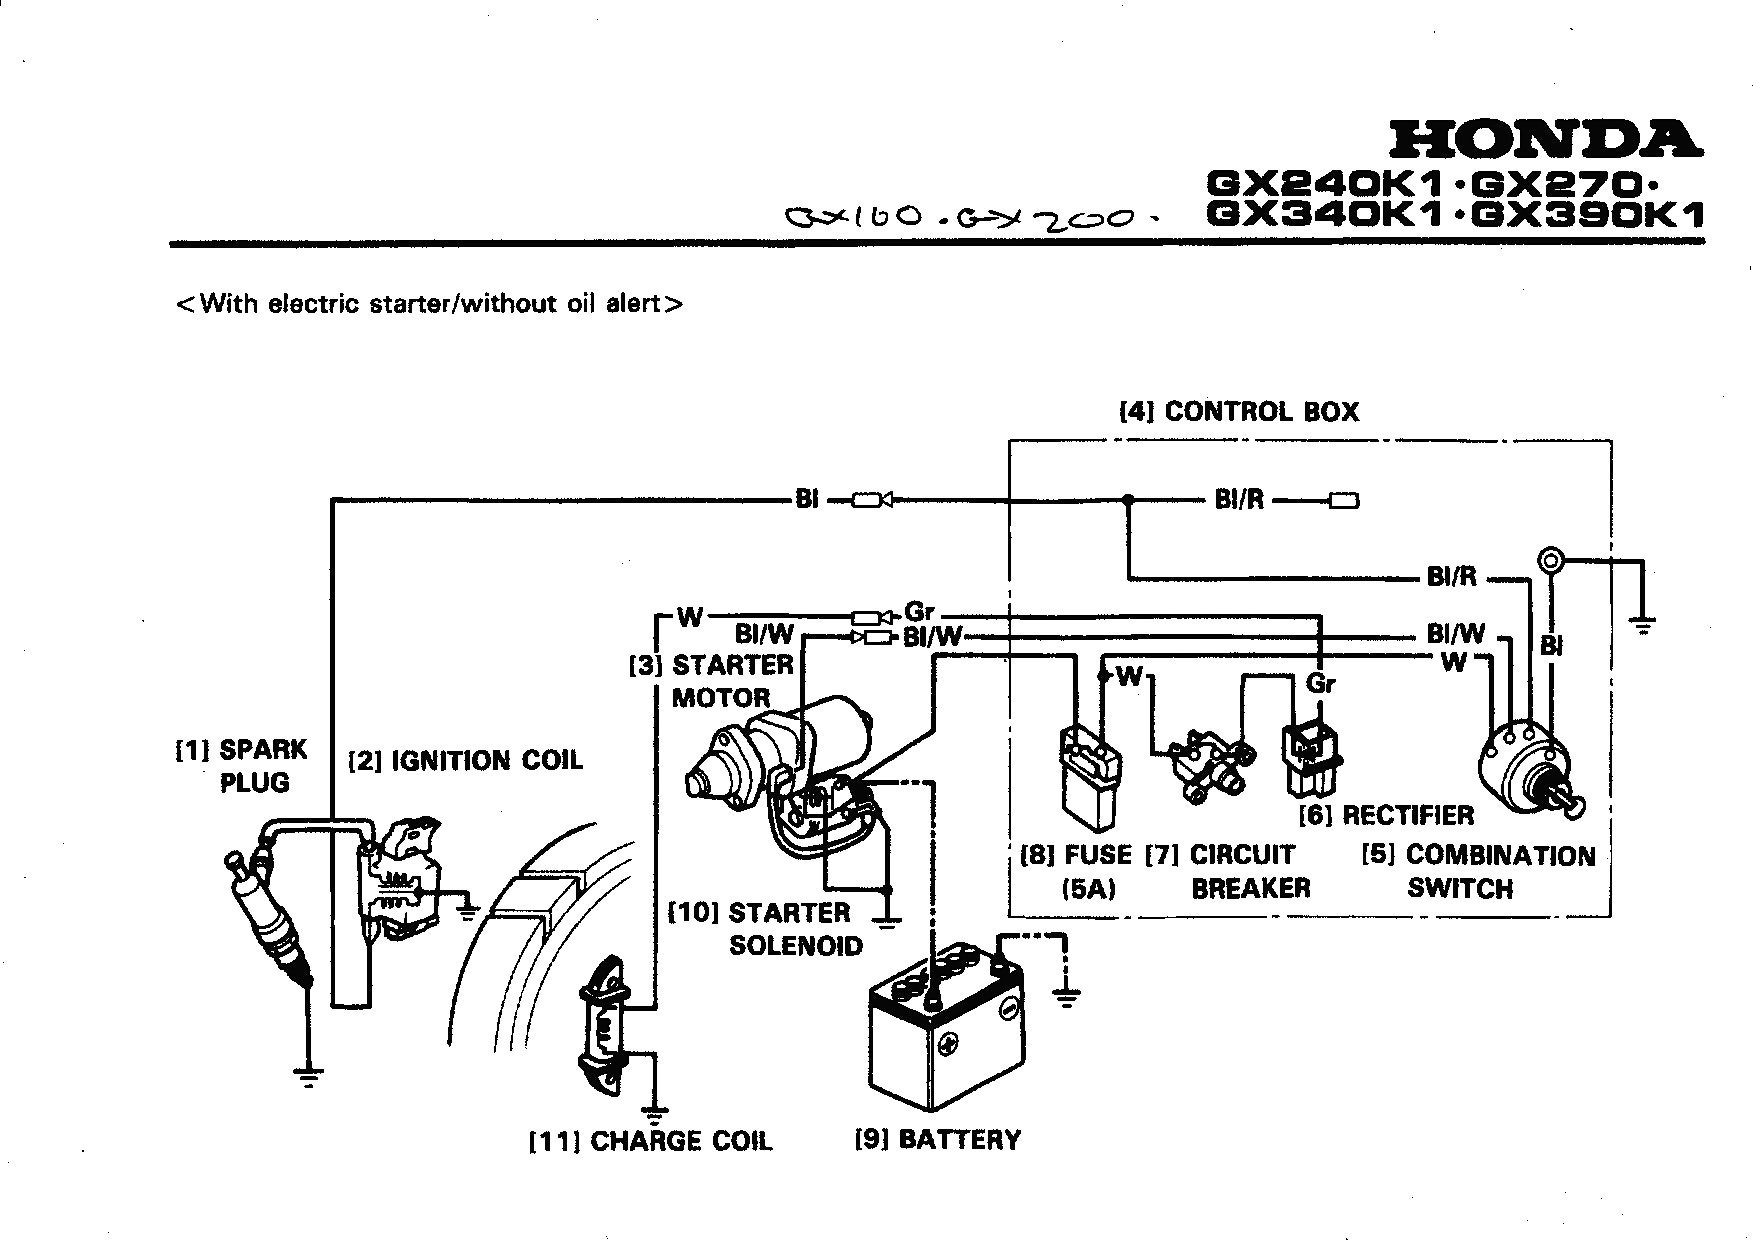 Ignition Switch Wiring Ford 3000 Ignition Switch Diagram Wedocable - Wiring  Diagram Blog Ignition Switch Wiring Diagram on dixie Indak ...